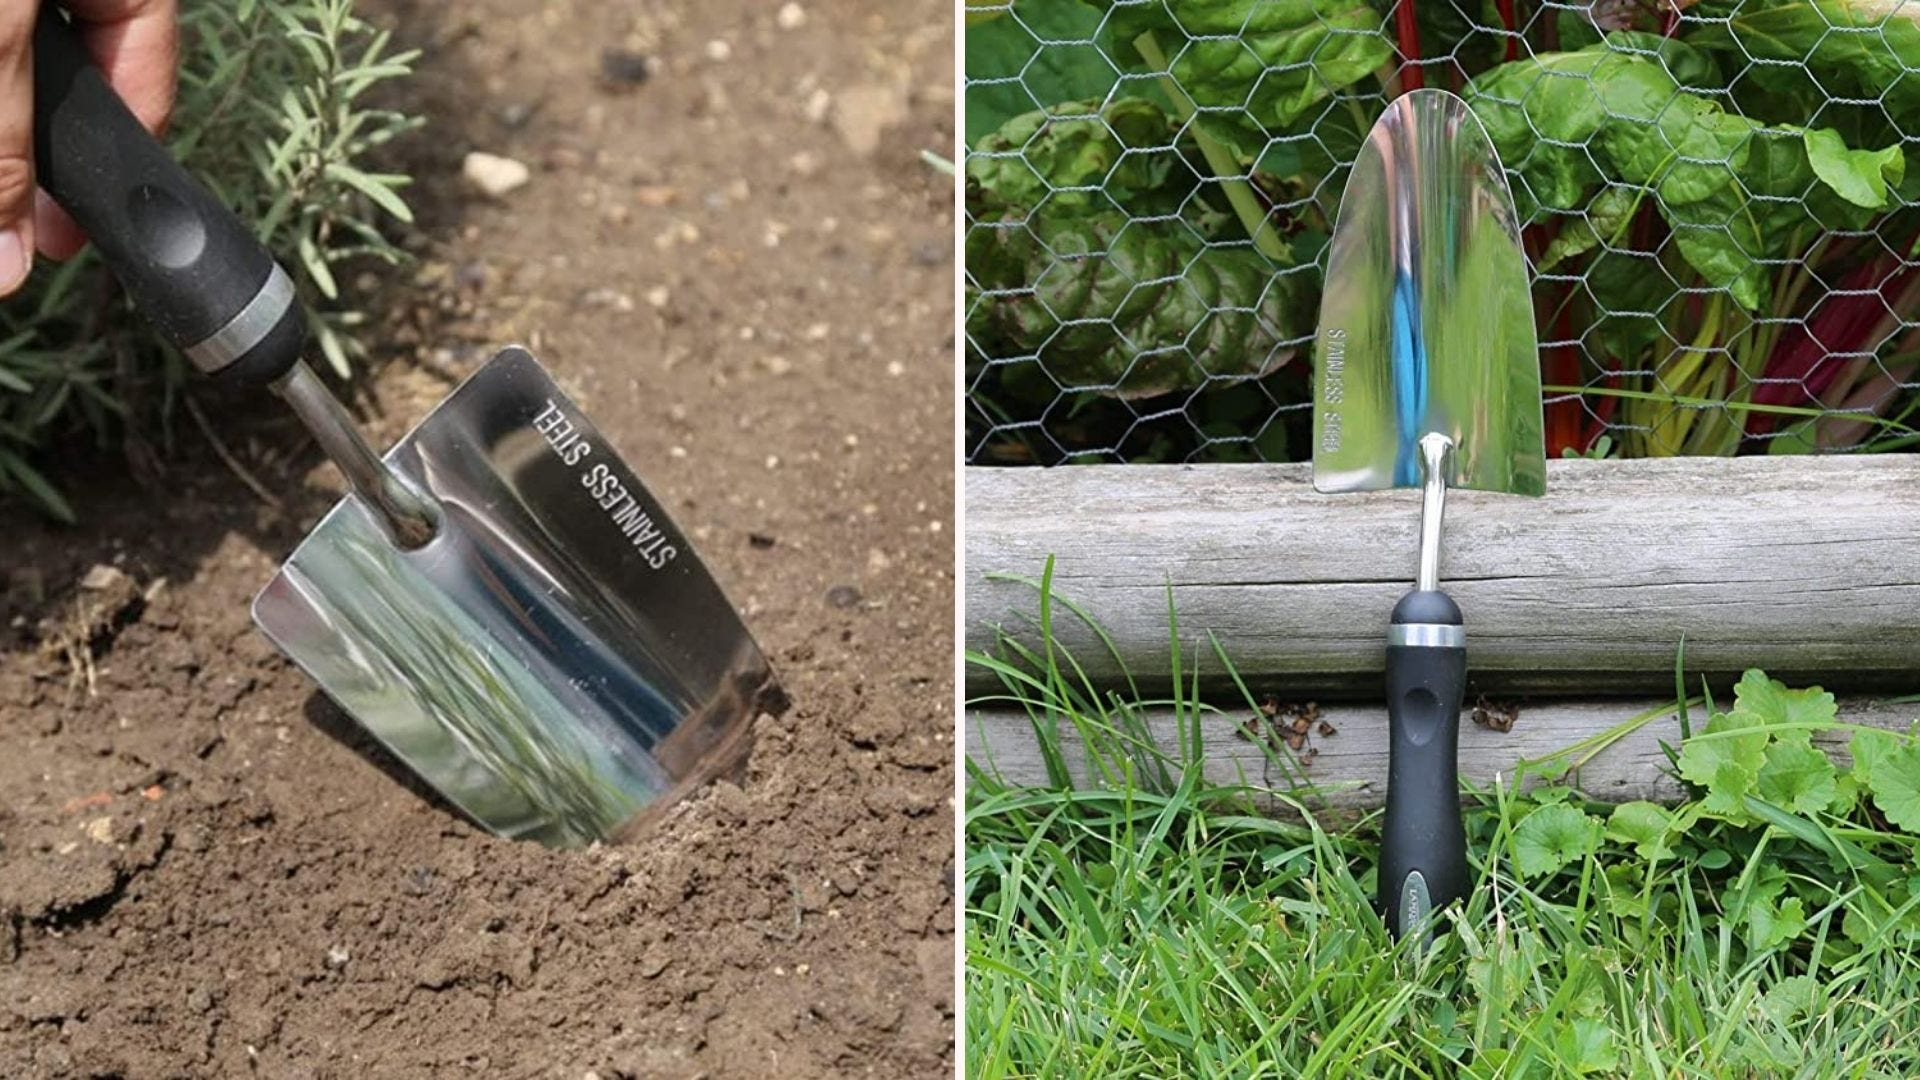 A trowel in the dirt; a trowel propped up against a chicken wire fence